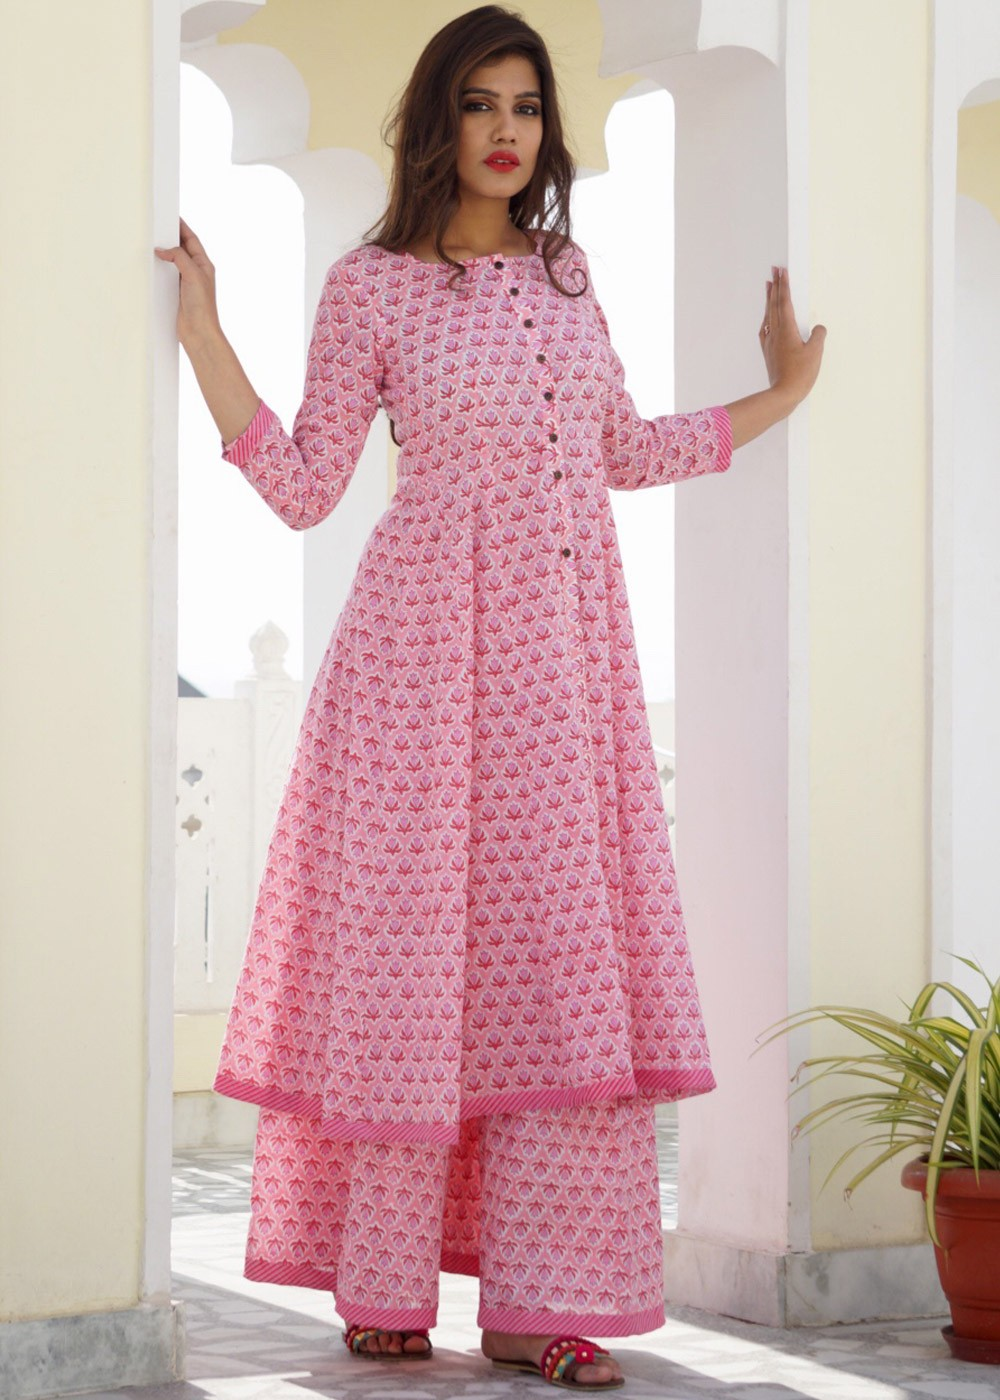 Indo Western Dresses - Readymade Pink Block Printed Cotton Kalidar and  Pakistani Sharara Suits ... 8e50d7359